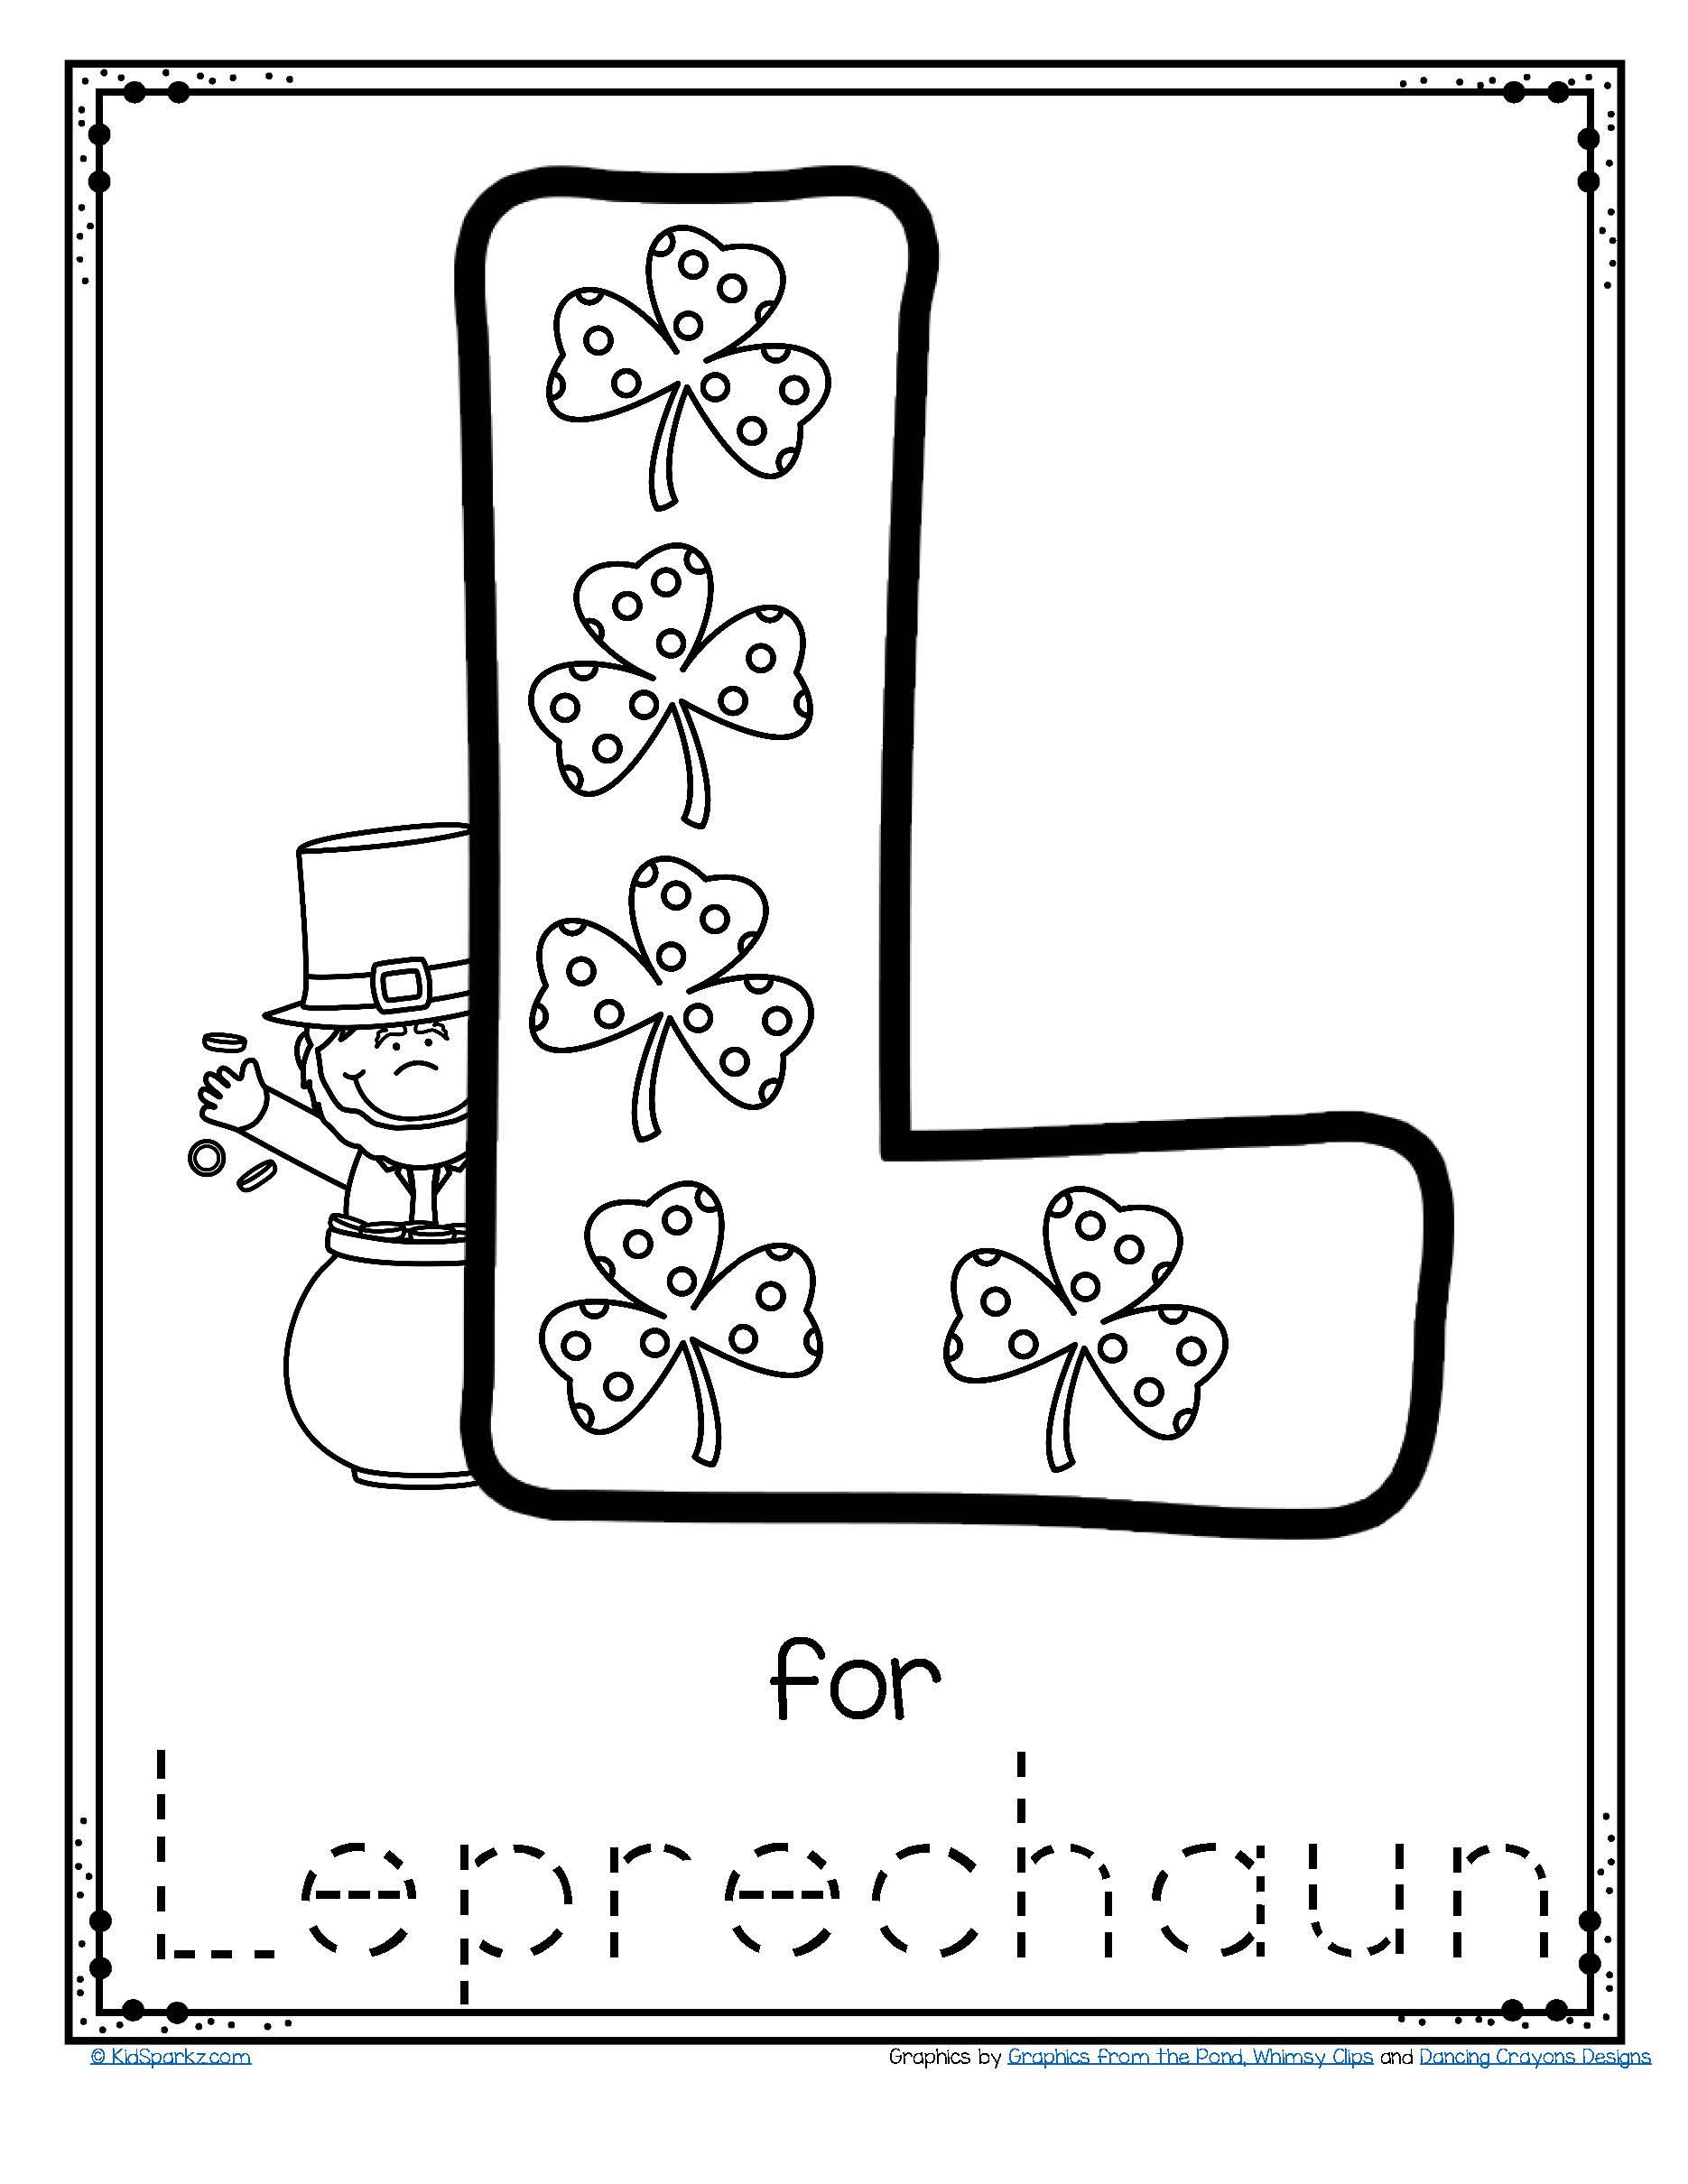 Free L For Leprechaun Alphabet Trace And Color Printable To Download Instantly St Patrick Day Activities St Patricks Activities St Patricks Day Crafts For Kids [ 2420 x 1870 Pixel ]